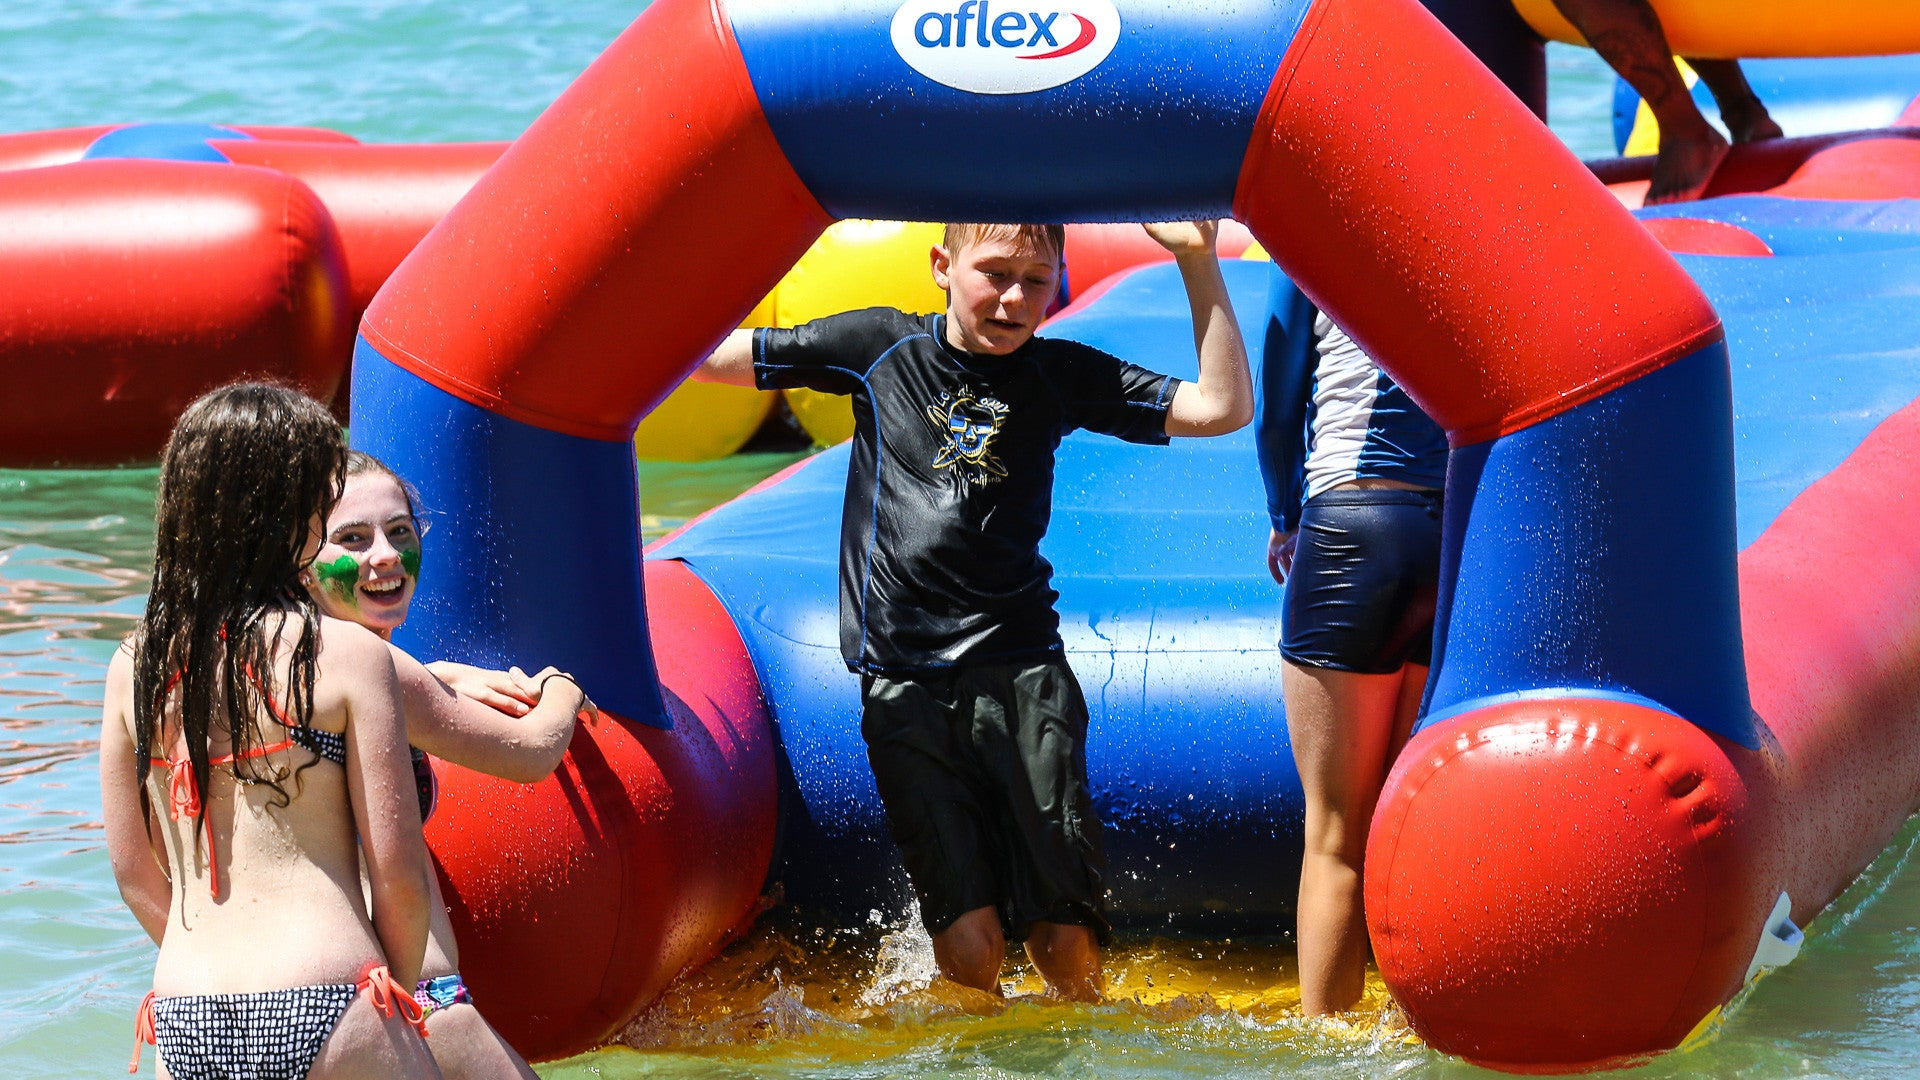 Open Water Inflatable Aqua Park Entry Pad - Aflex Technology